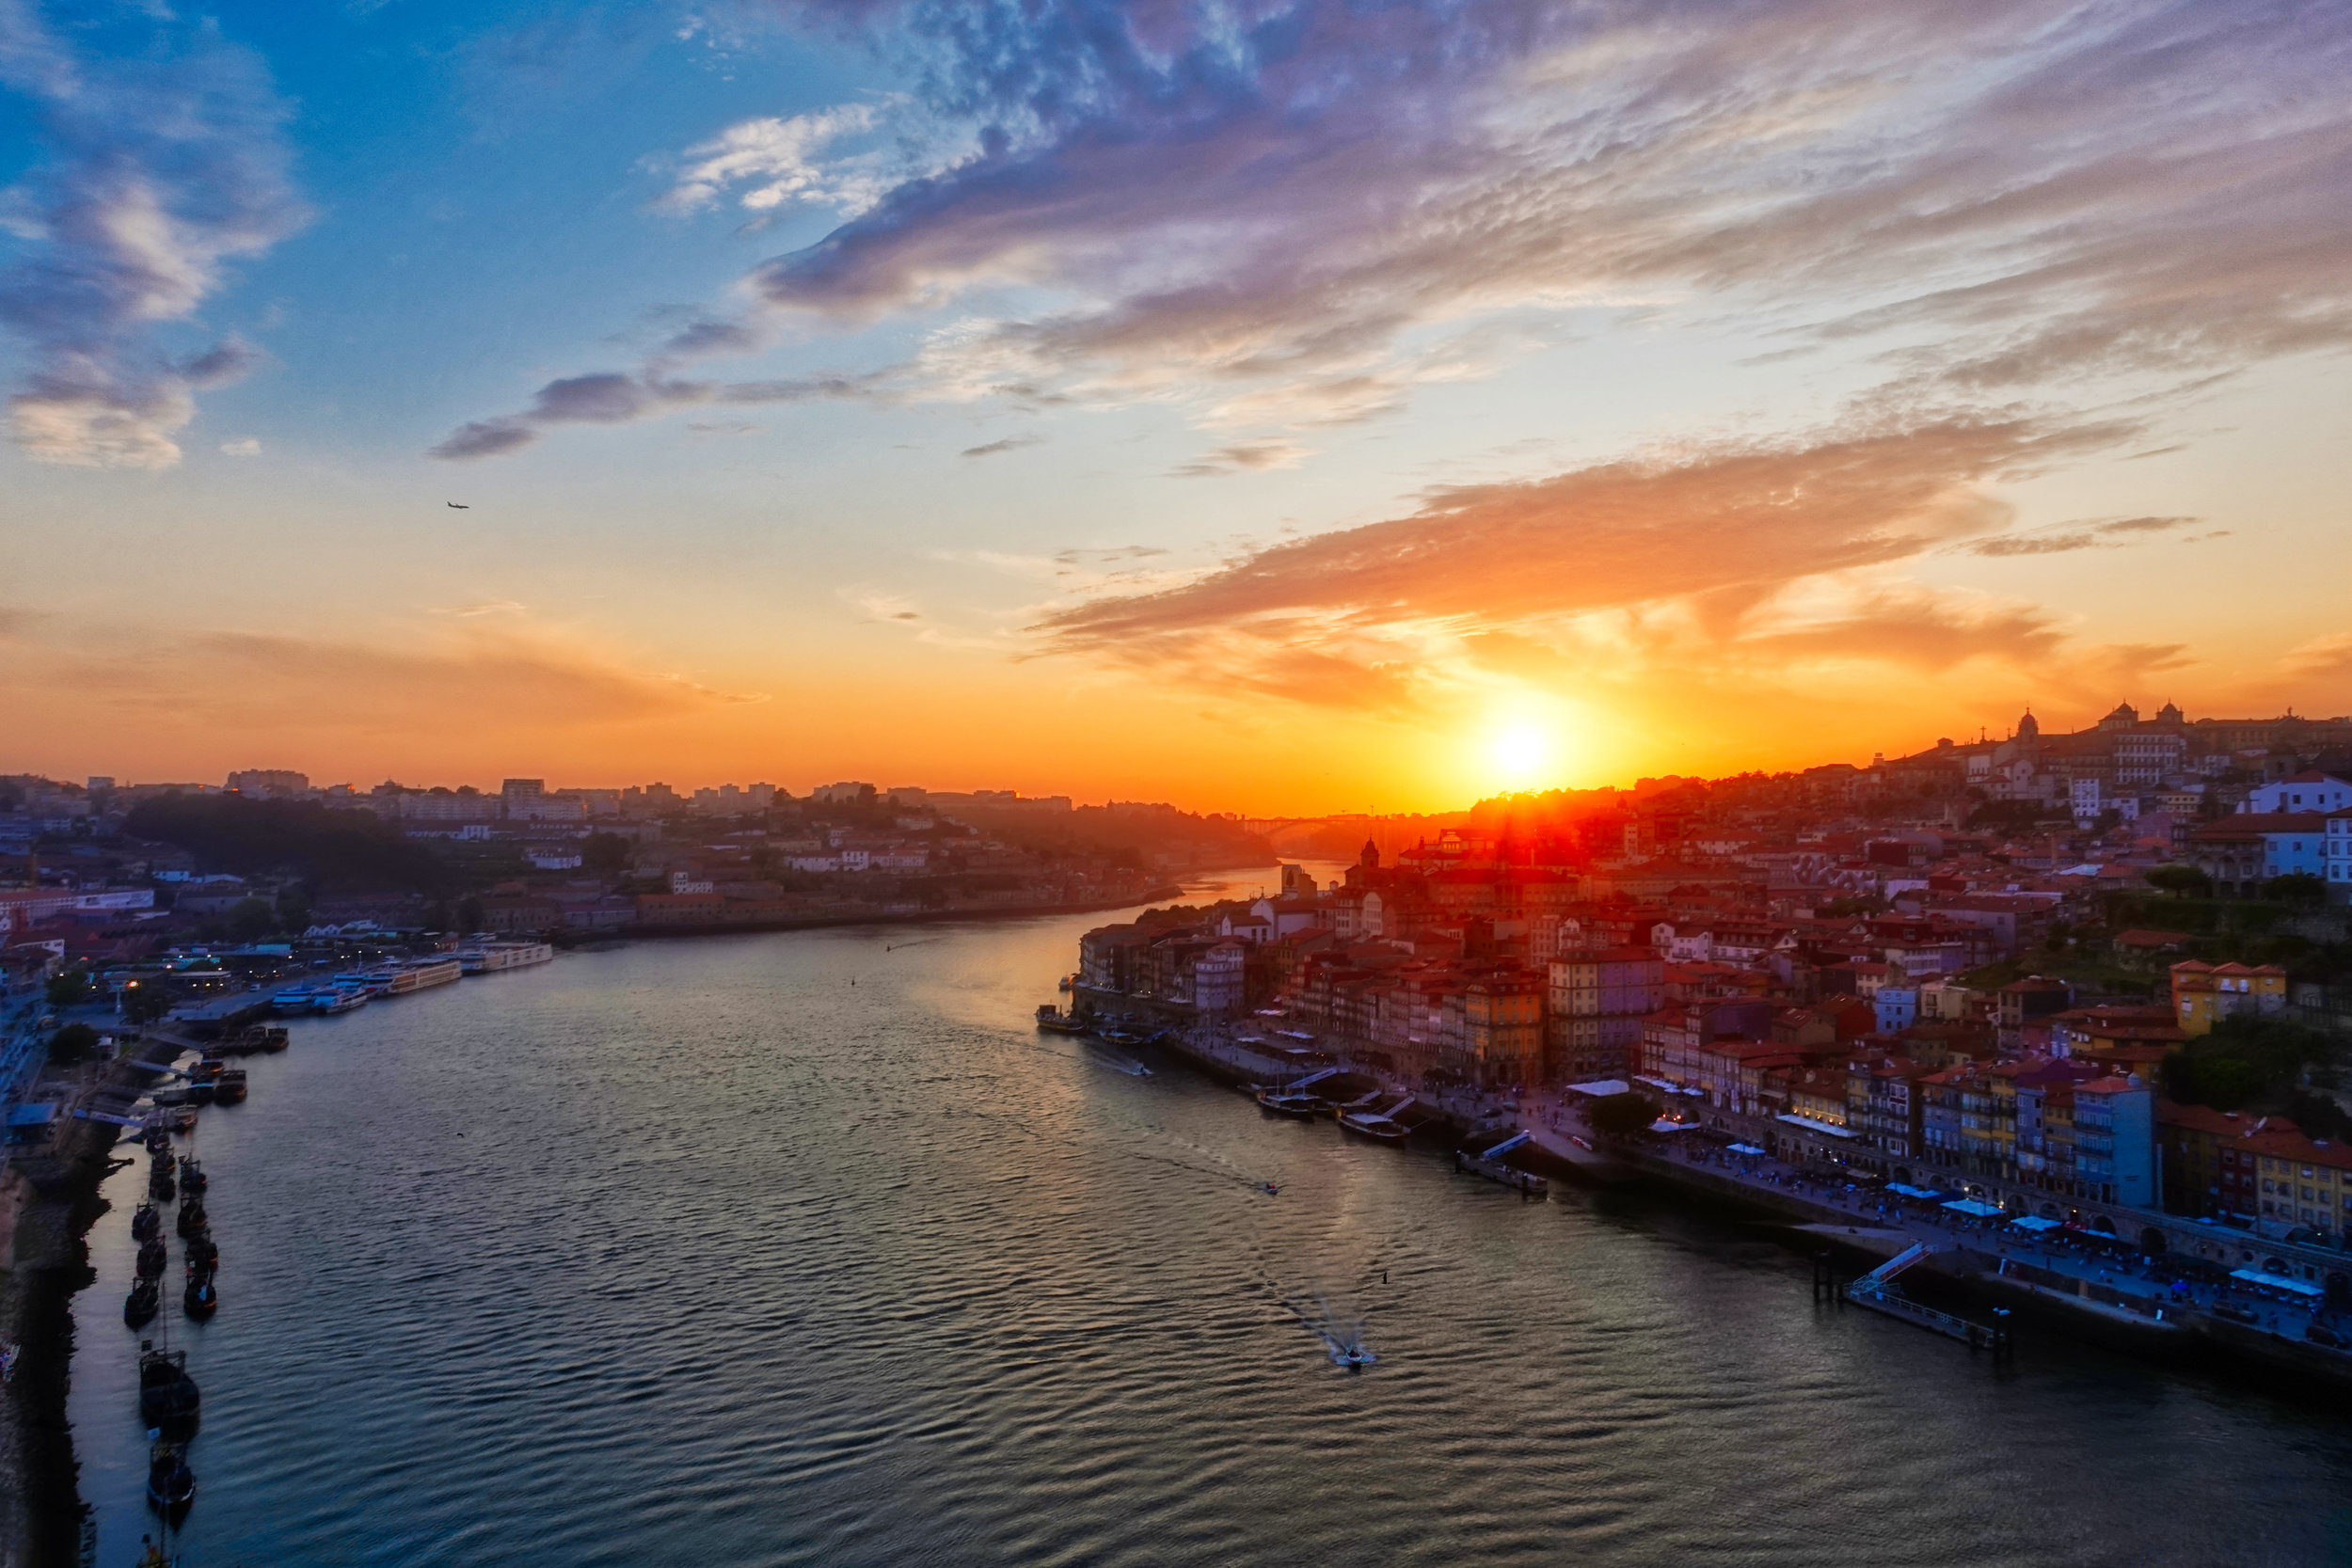 We are in the city of sun and wine, Porto. - Let's meet and talk!